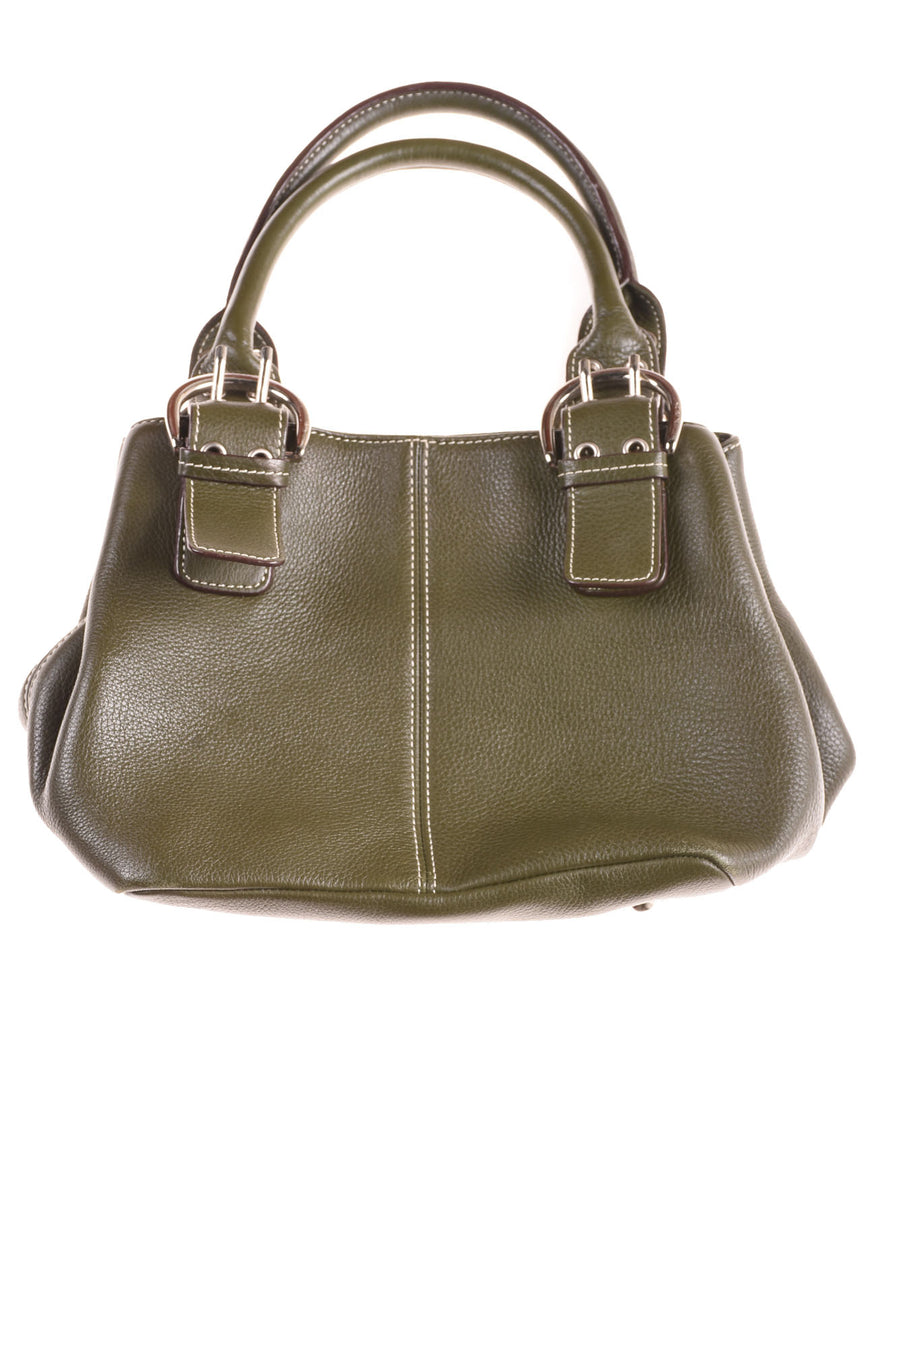 USED Tignanello Women's Handbag N/A Green